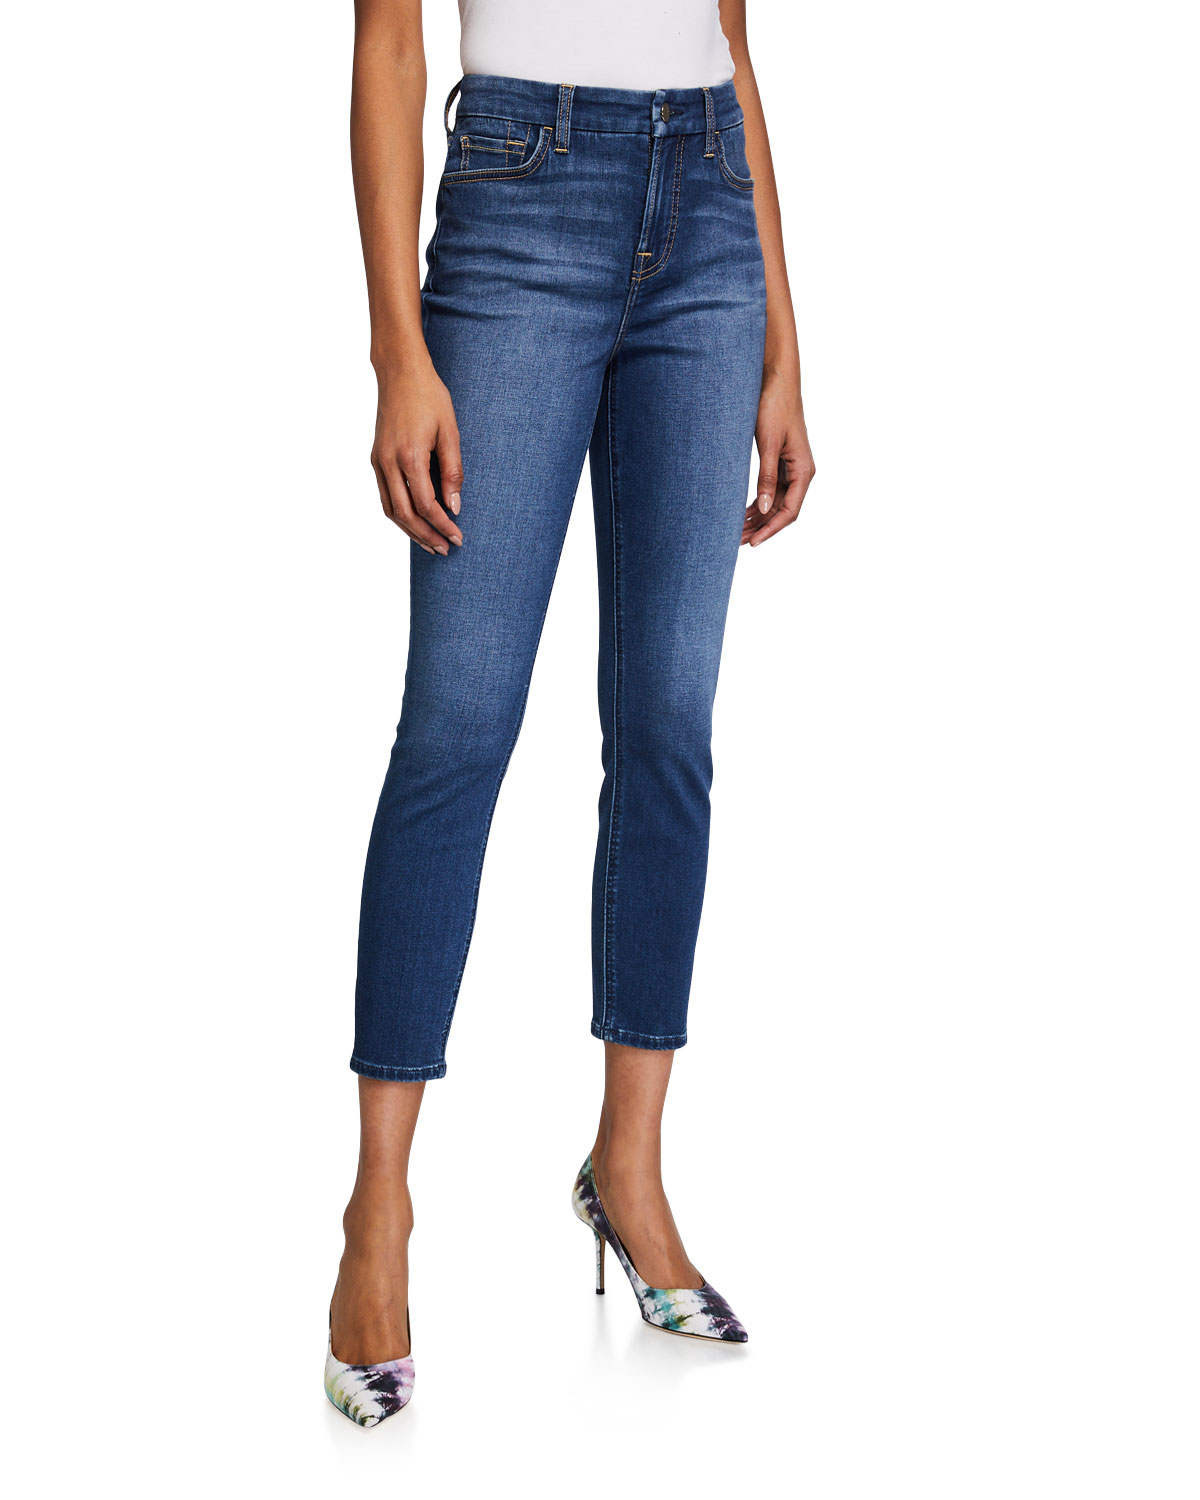 Jen7 by 7 for All Mankind High-Rise Skinny Ankle Jeans